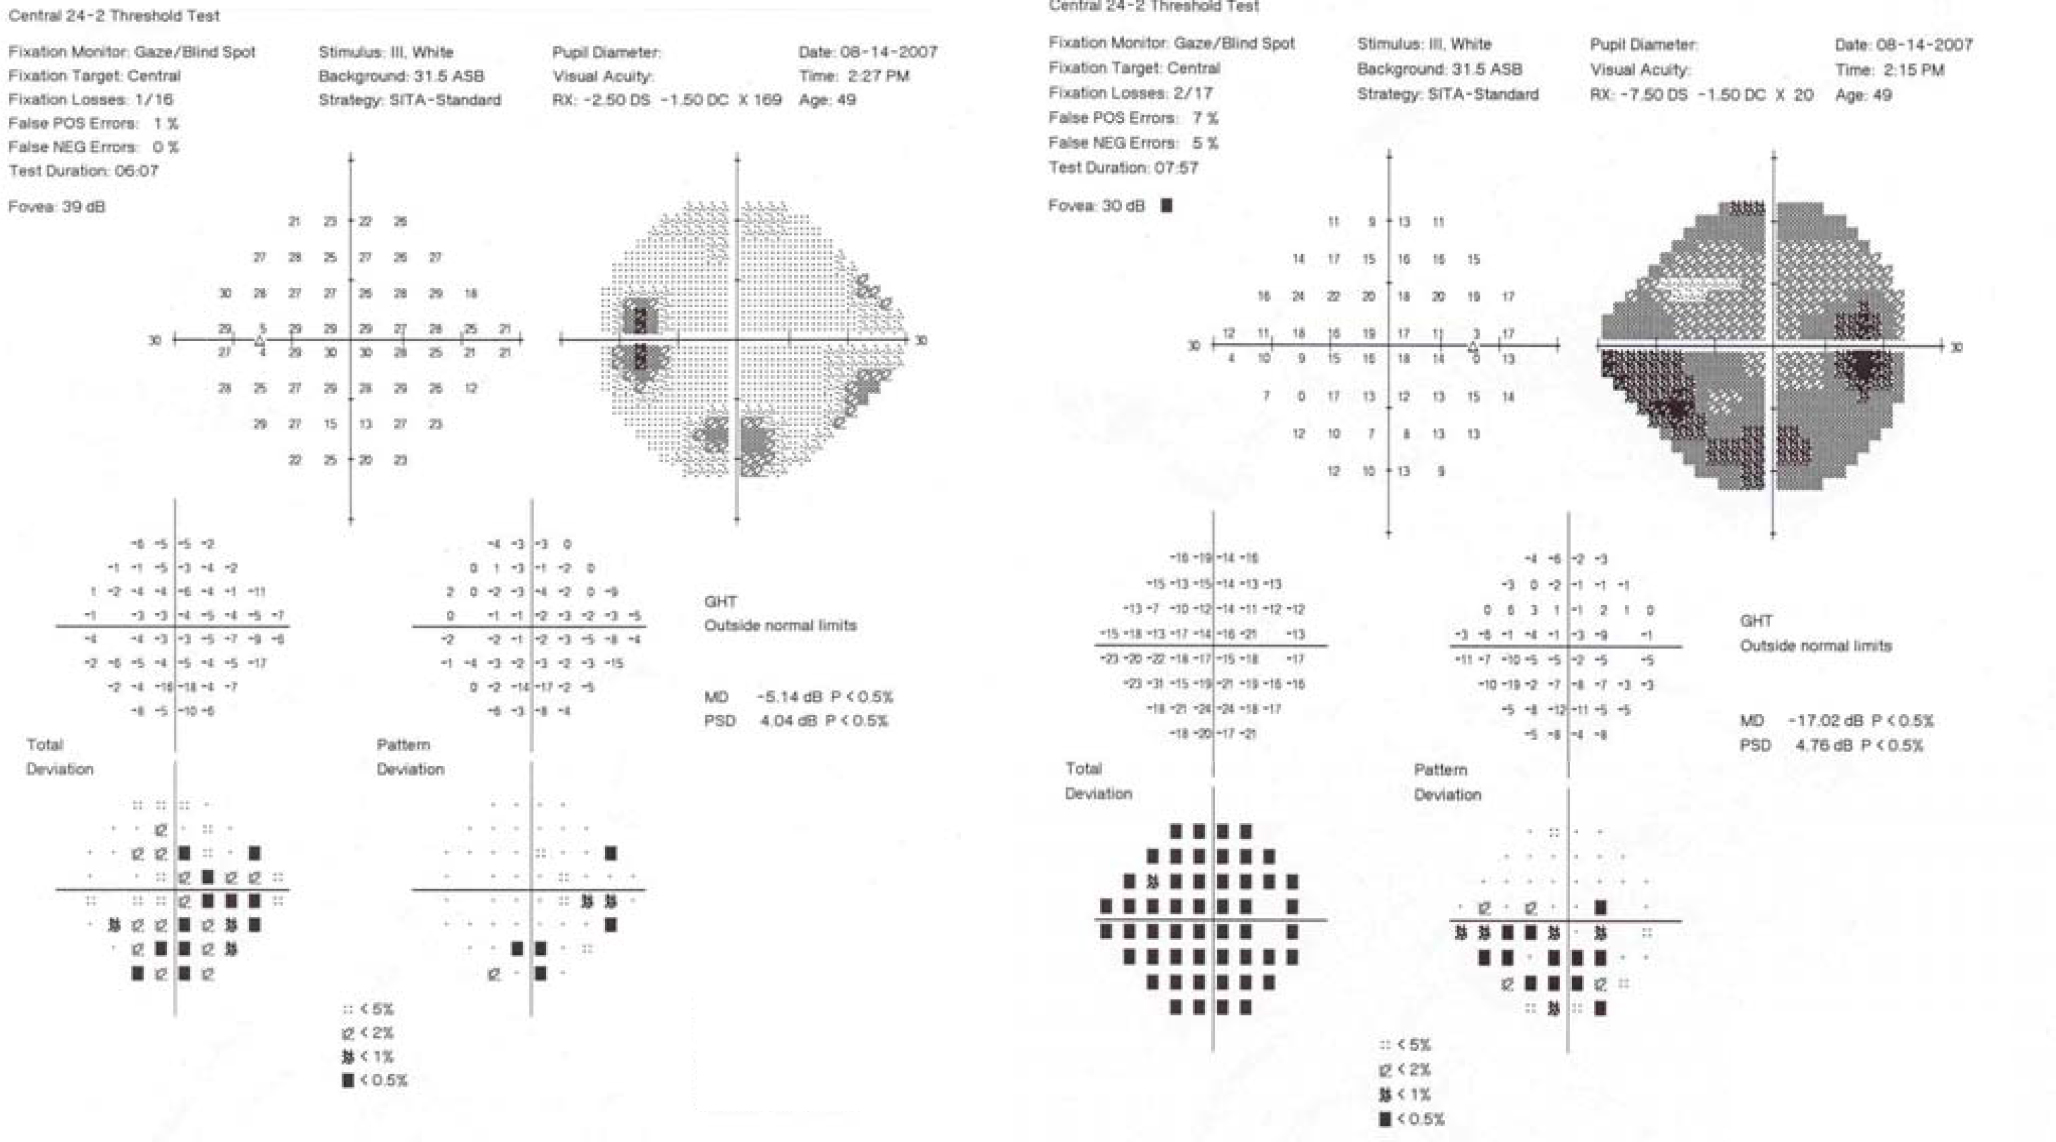 Molecular vision wallace mol vis 2014 201174 1181 figure 7 humphrey visual fields 242 sita standard of subject 3 indicate advanced visual field loss in the right eye and an inferior arcuate and superior nasal nvjuhfo Image collections